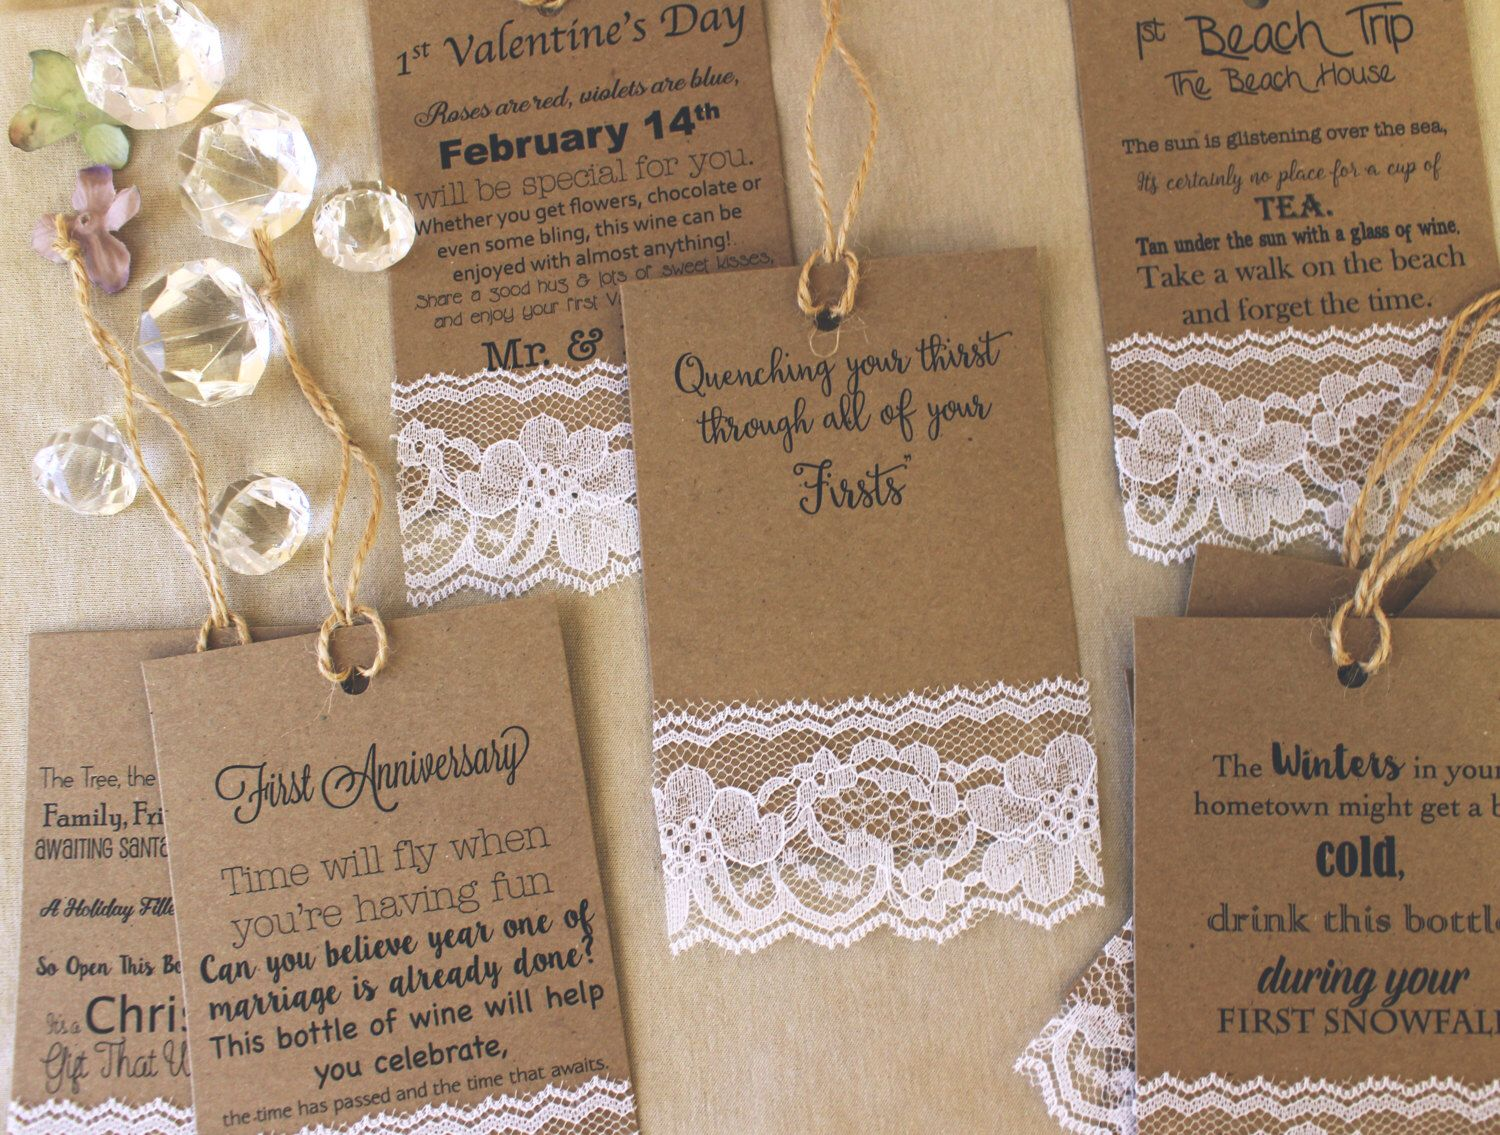 wine wedding shower gift poem%0A Wine Tags  Wedding Milestones  printed tags  poem  shower  gift  Marriage  firsts  bride  groom  shabby chic  lace  Set of hanging tags